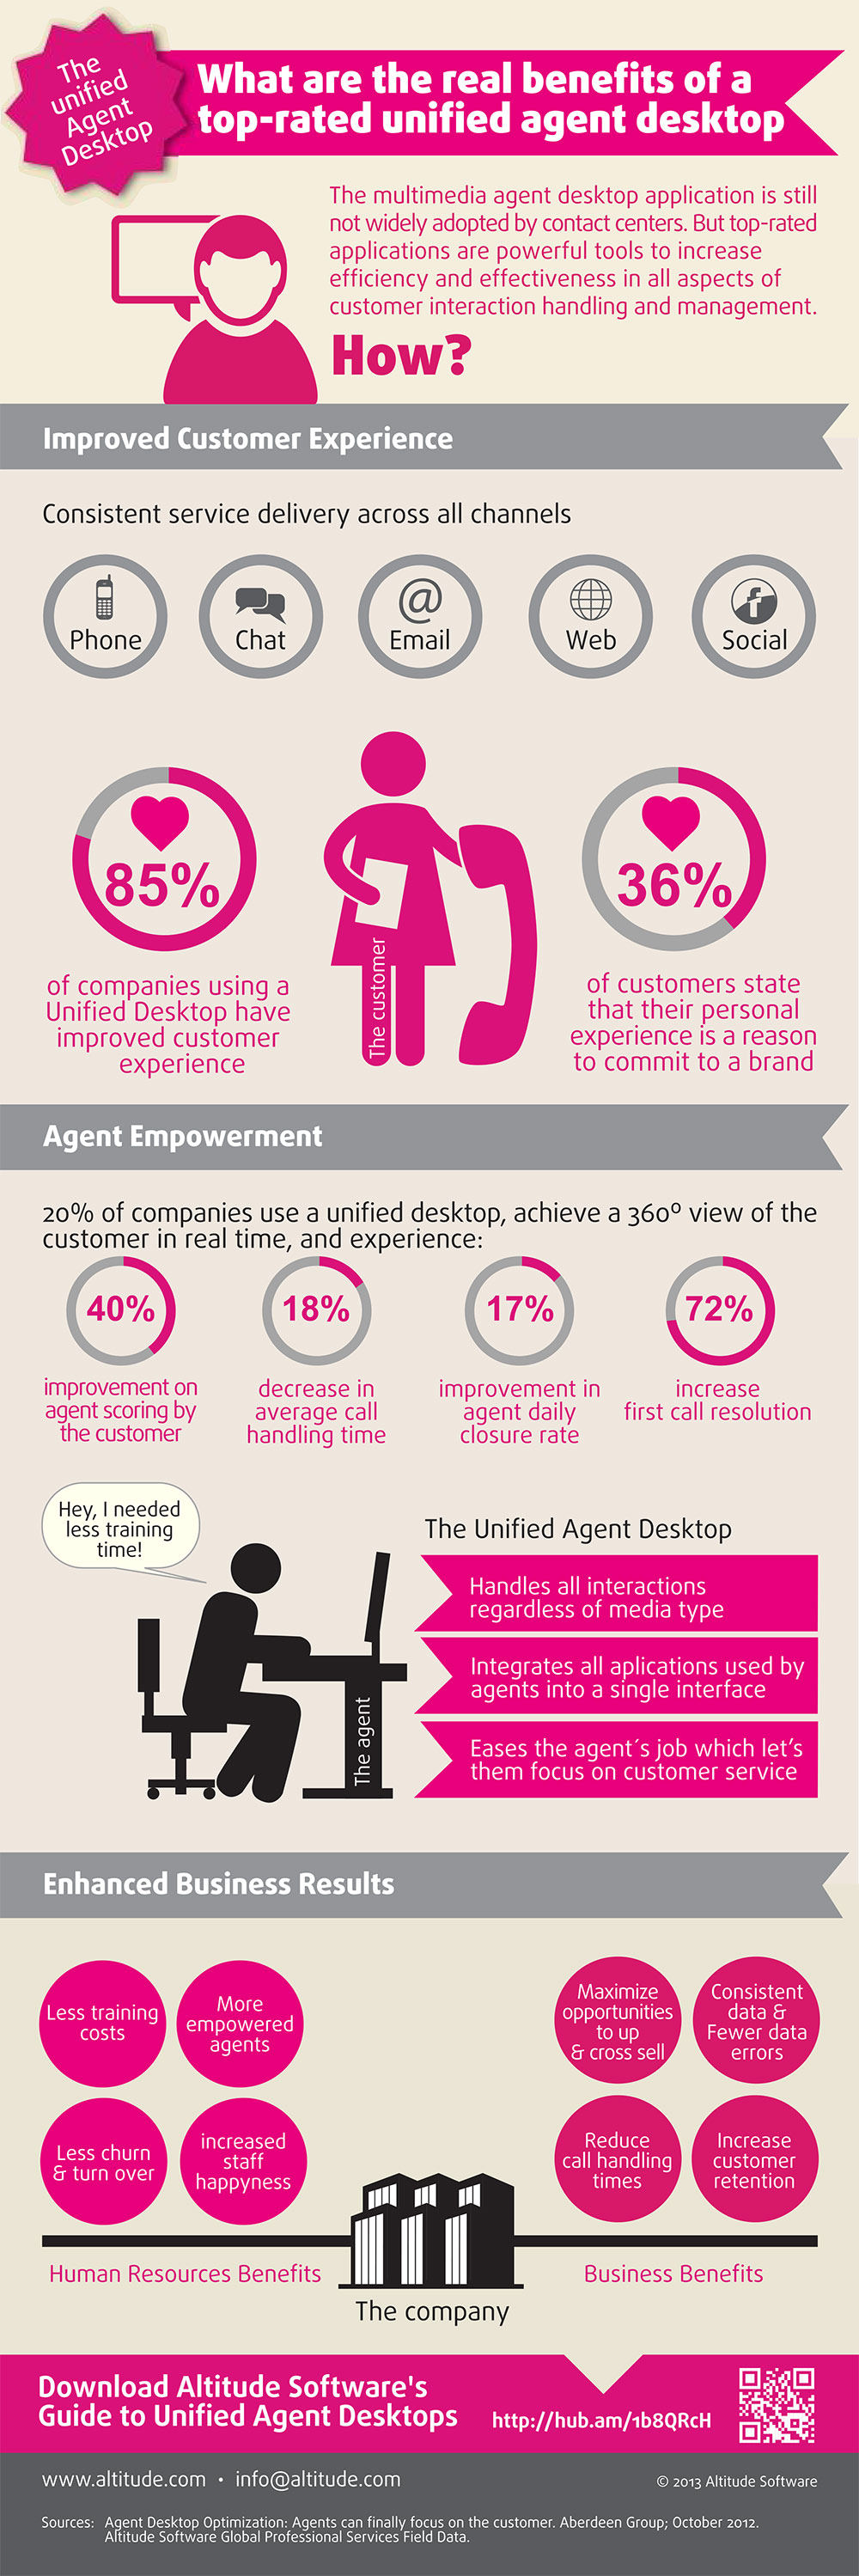 Altitude Software Unified Desktop Infographic